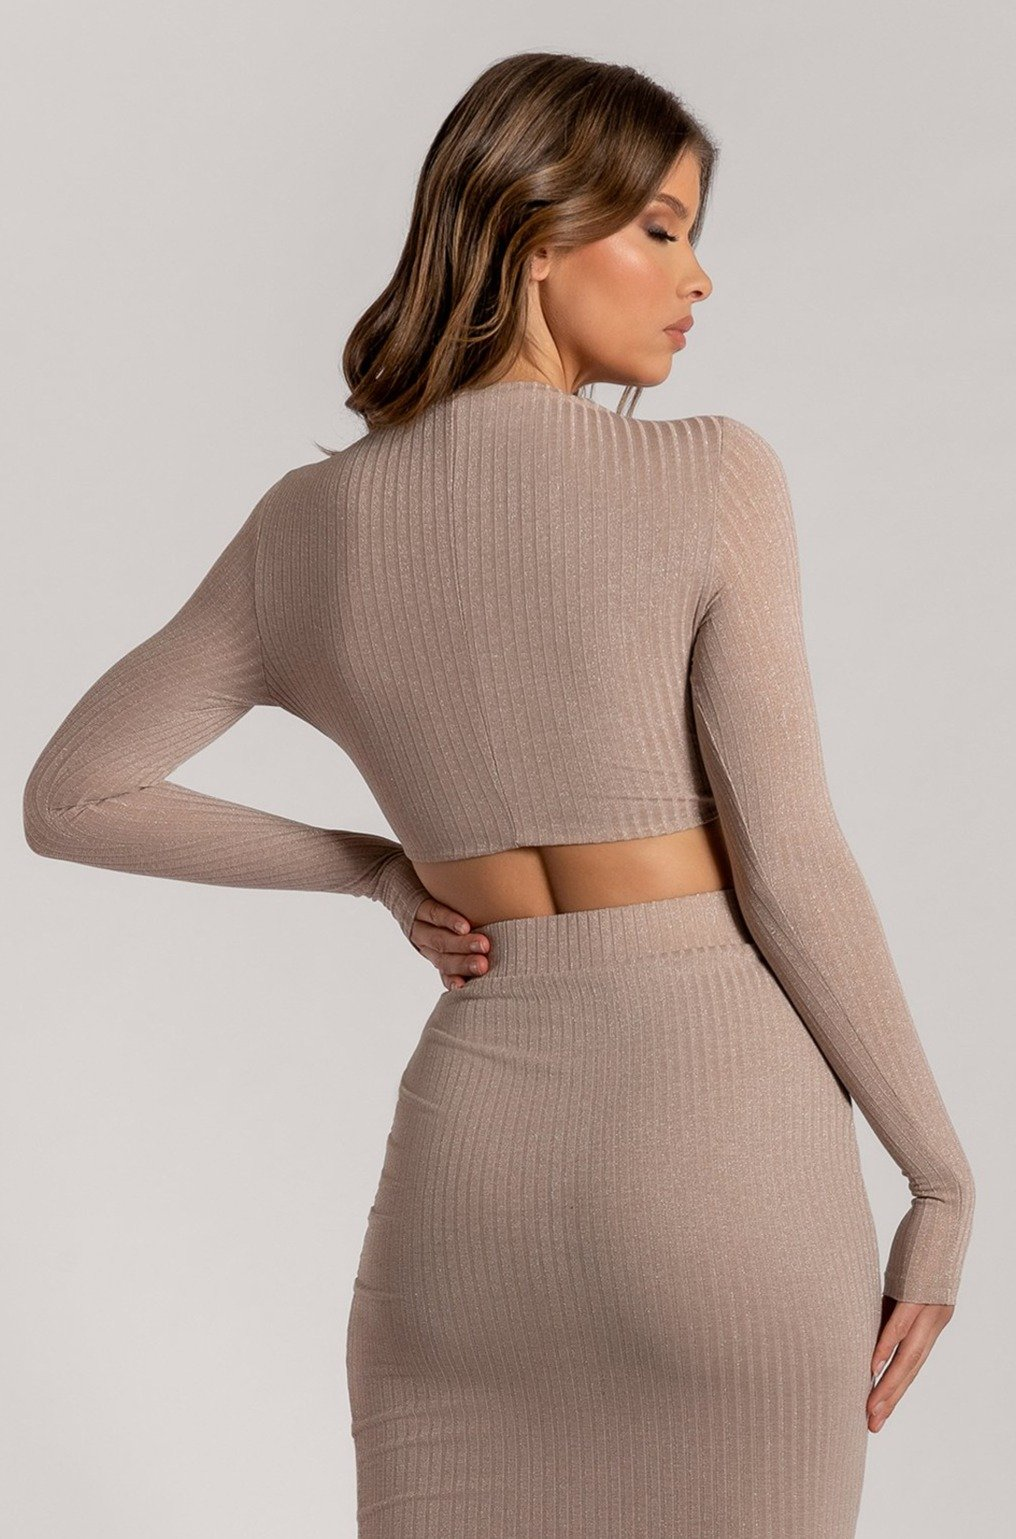 Iliana Shimmer Rib Long Sleeve Crop Top - Nude - MESHKI